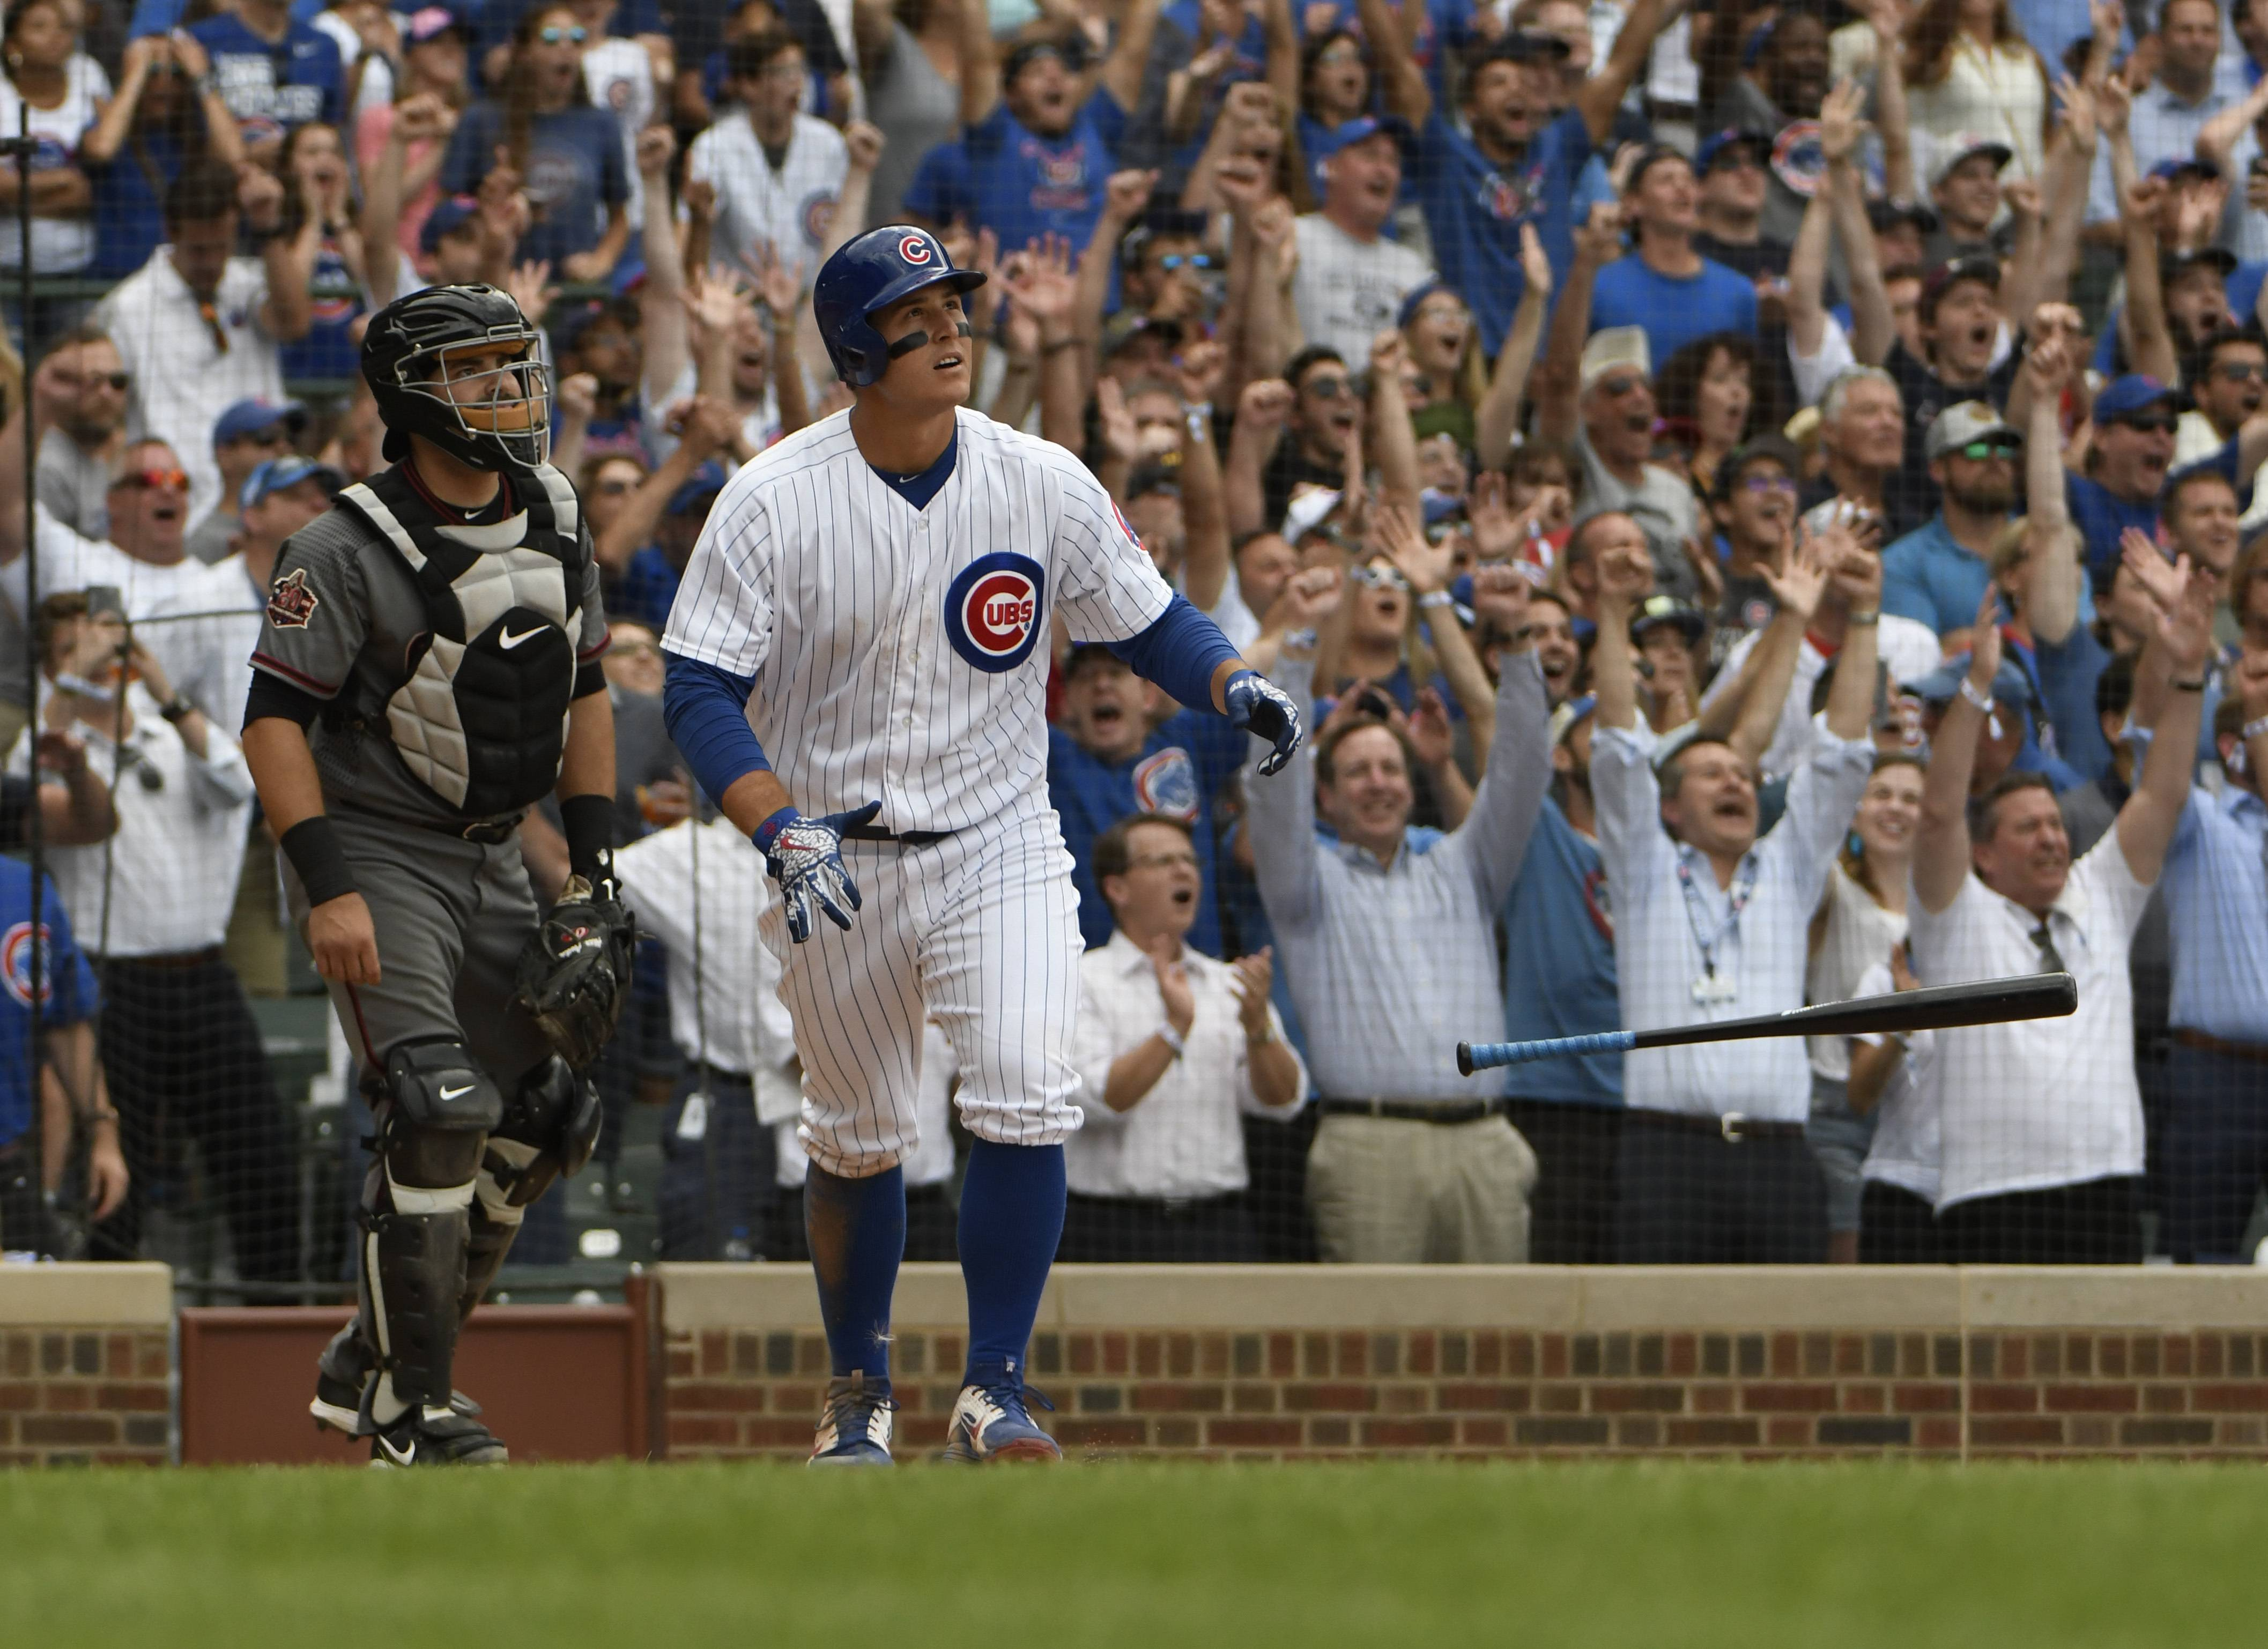 Cubs win on walk-off, then trade for Hamels